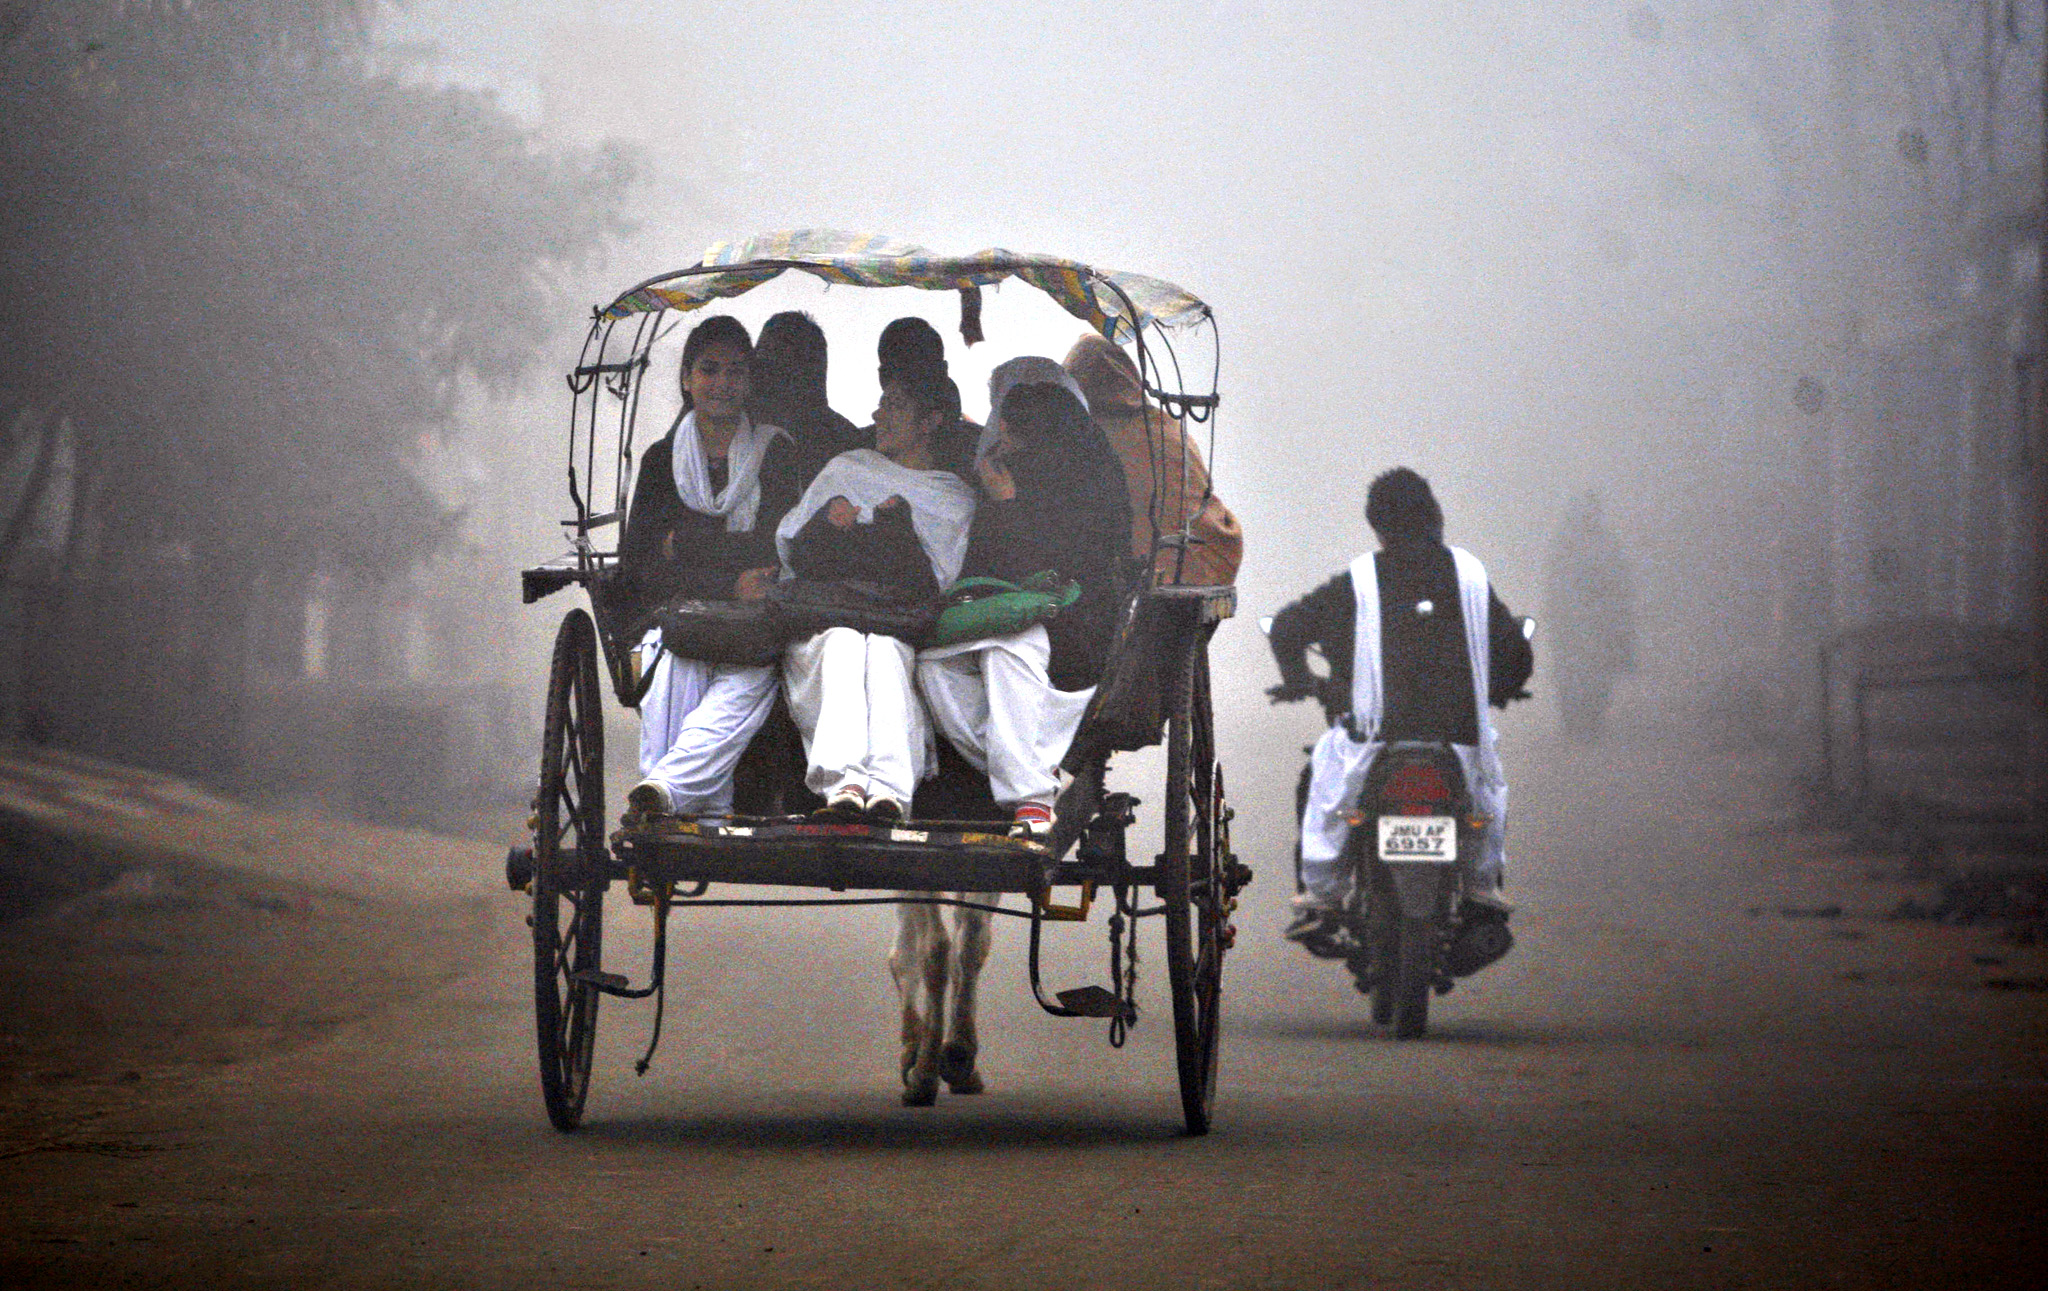 Indian students travel on a horse cart surrounded by fog in Jammu, India, Thursday, Dec.18, 2014. As winter sets in, thick fog engulfs most of north India early mornings.